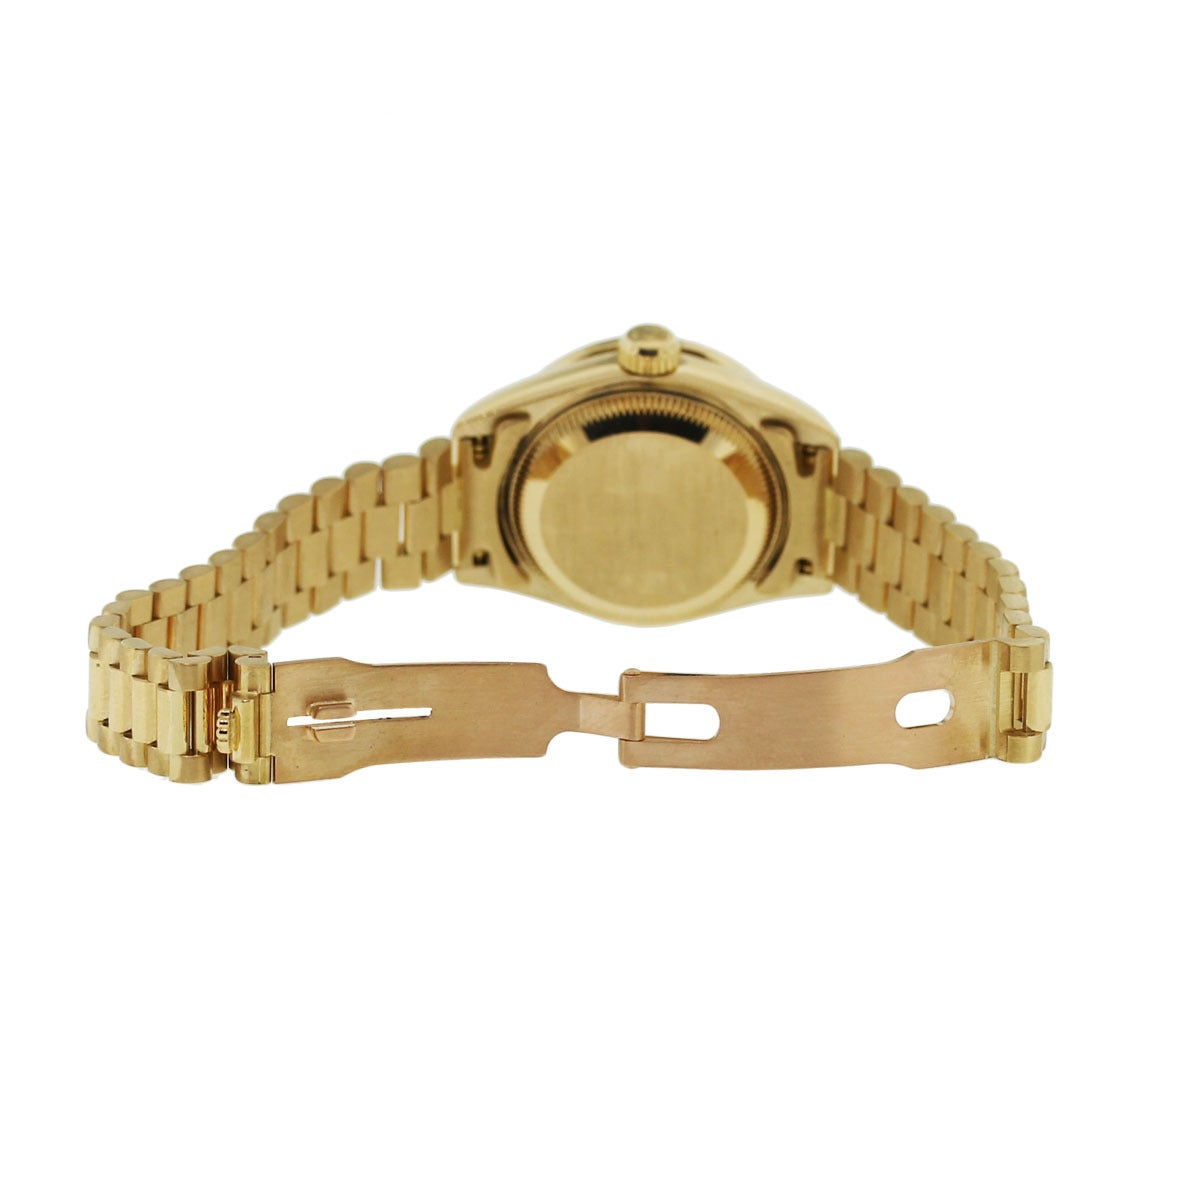 Rolex Lady's Yellow Gold Oyster Datejust Presidential Diamond Watch Ref 69158 4